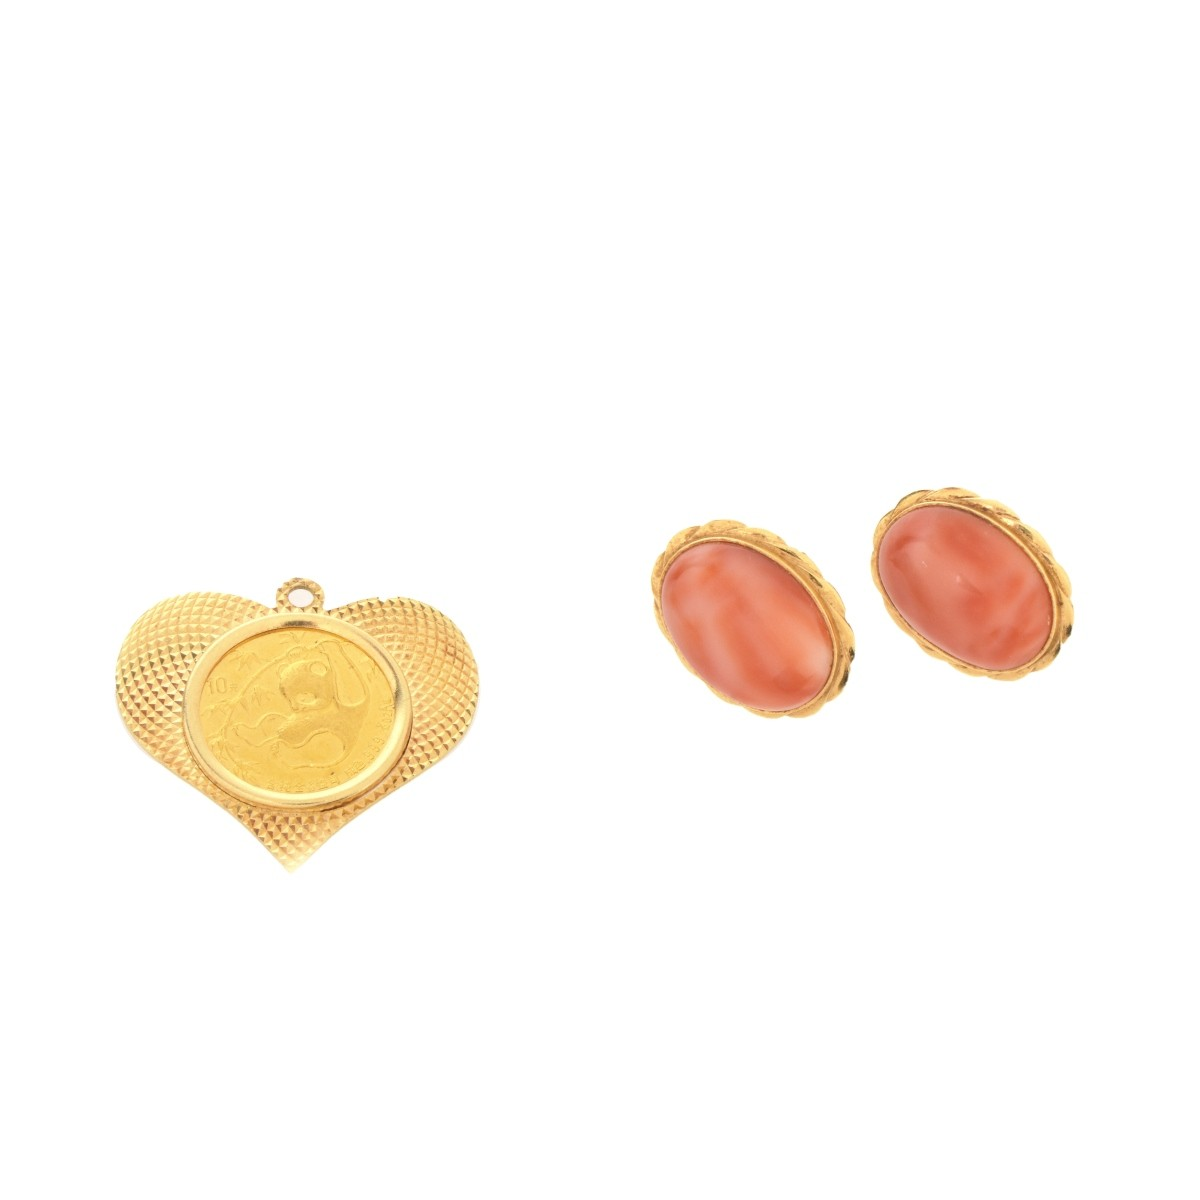 10 Yuan Coin Pendant and Coral 14K Earrings